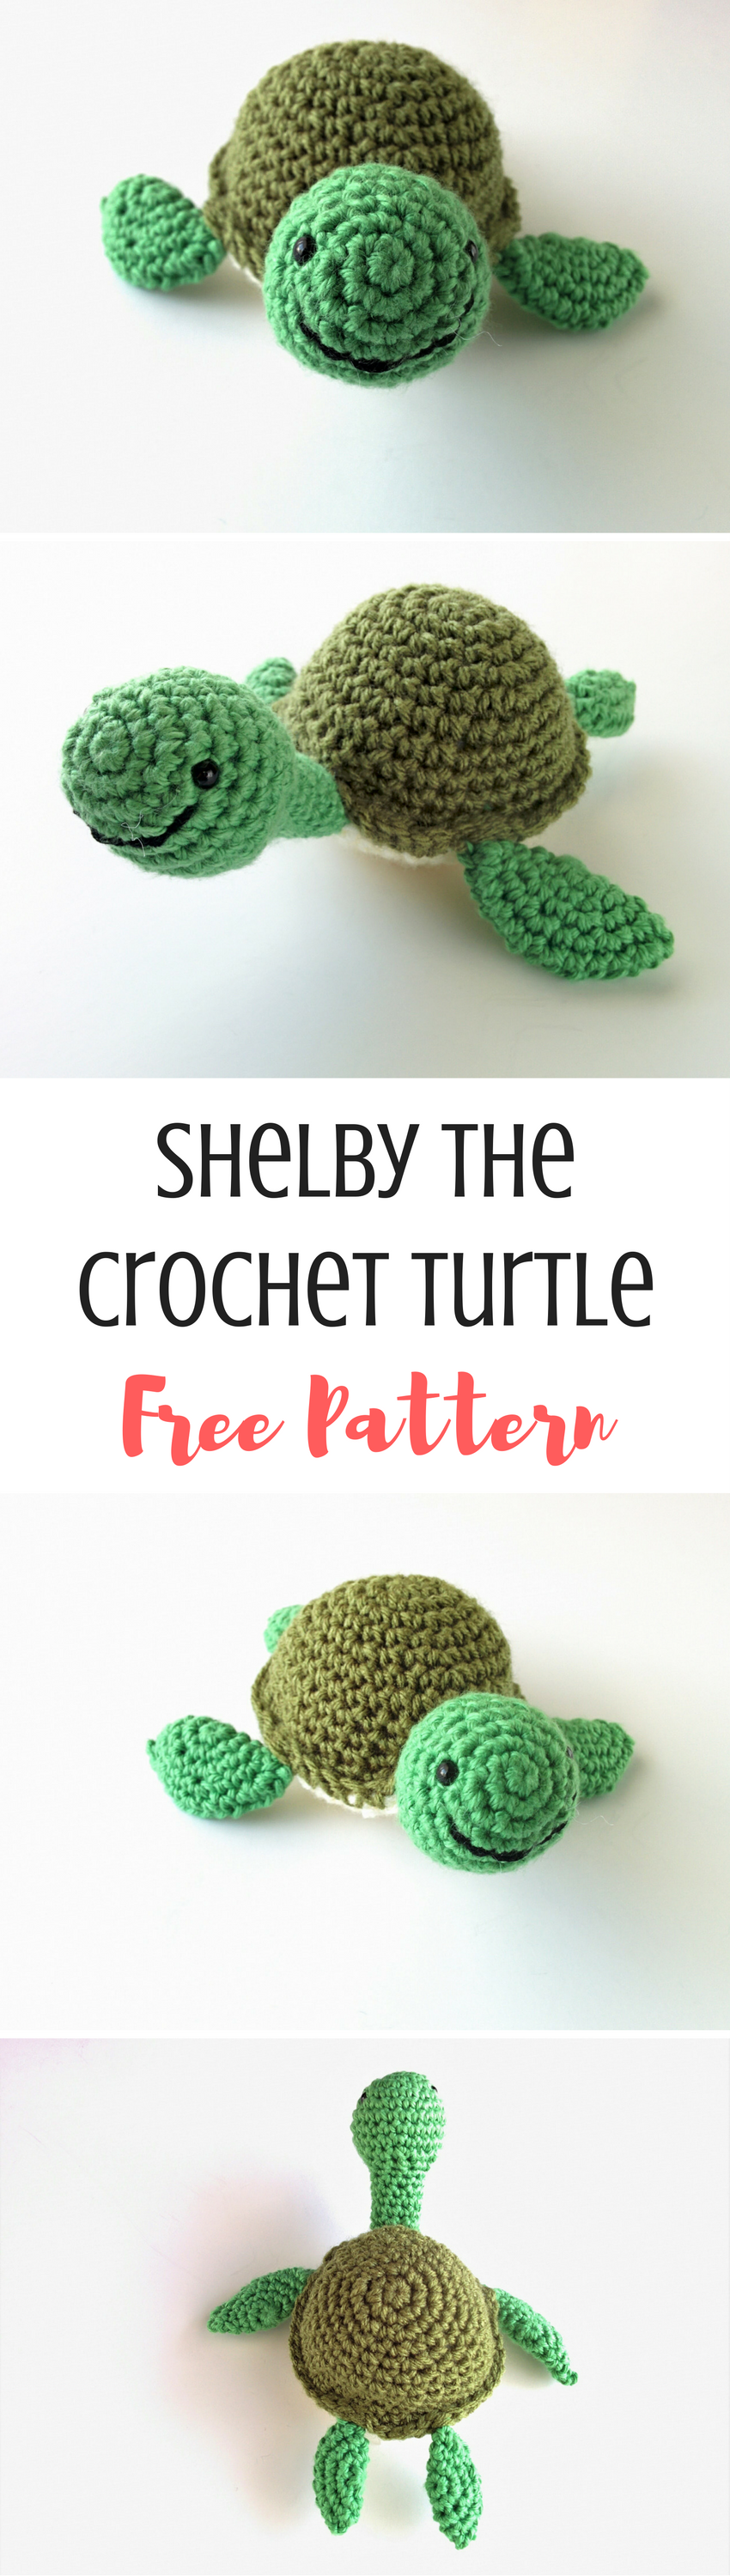 Shelby the Crochet Turtle Pattern | Varios y Animales